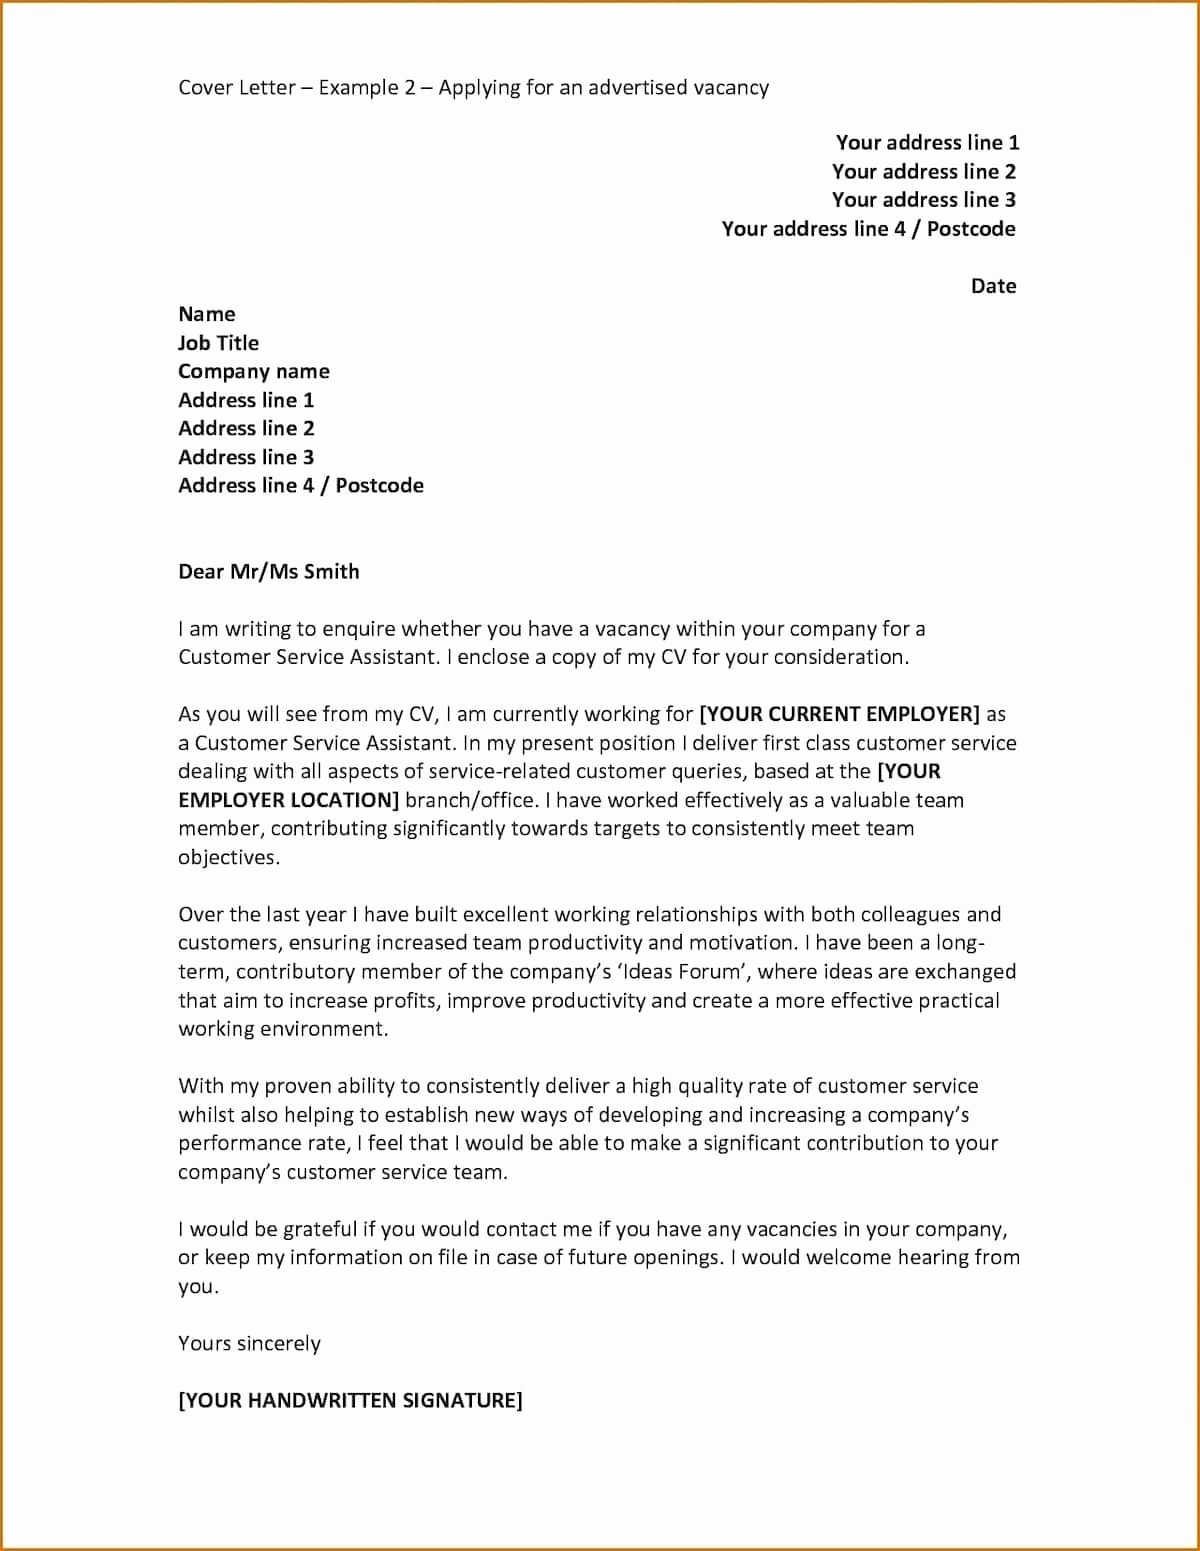 Letters Of Application Examples Best Of How to Write An Application Letter for Employment In Ghana